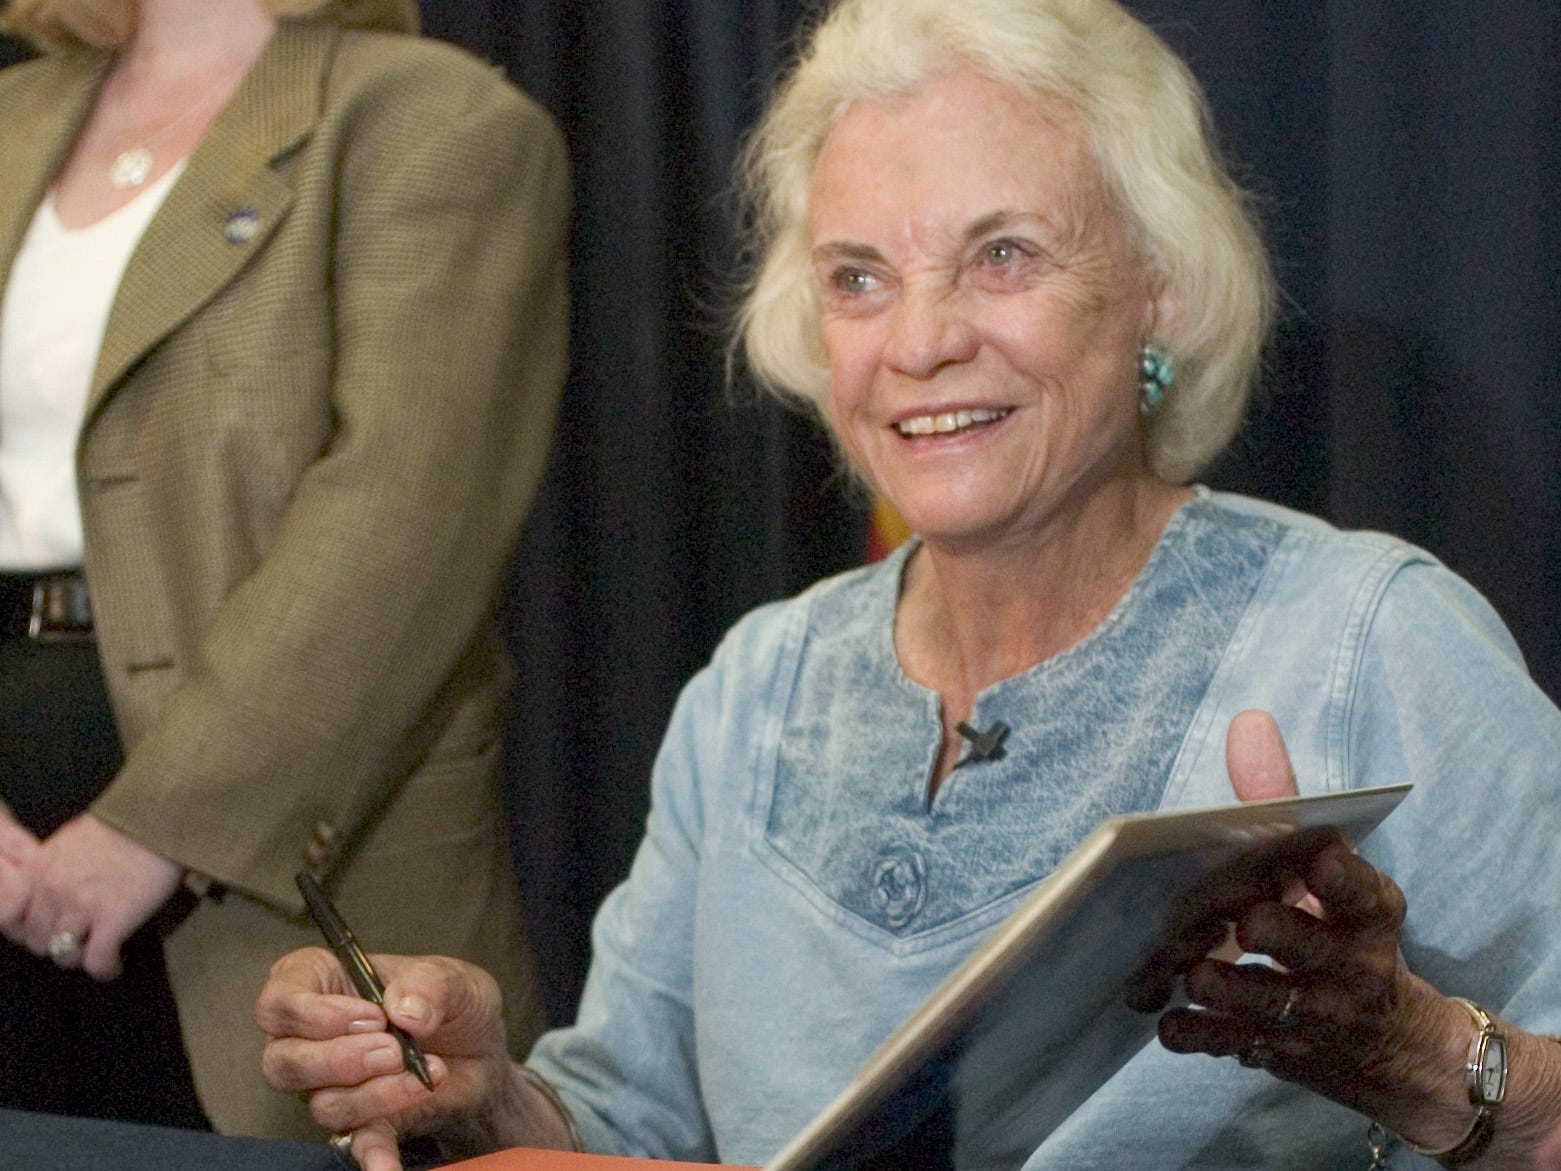 Justice Sandra Day O'Connor visits with the public during a book signing at the Scottsdale Civic Center Library on Sept. 18, 2005. Justice O'Connor visited the library to talk about her childhood growing up in Arizona and her new book.